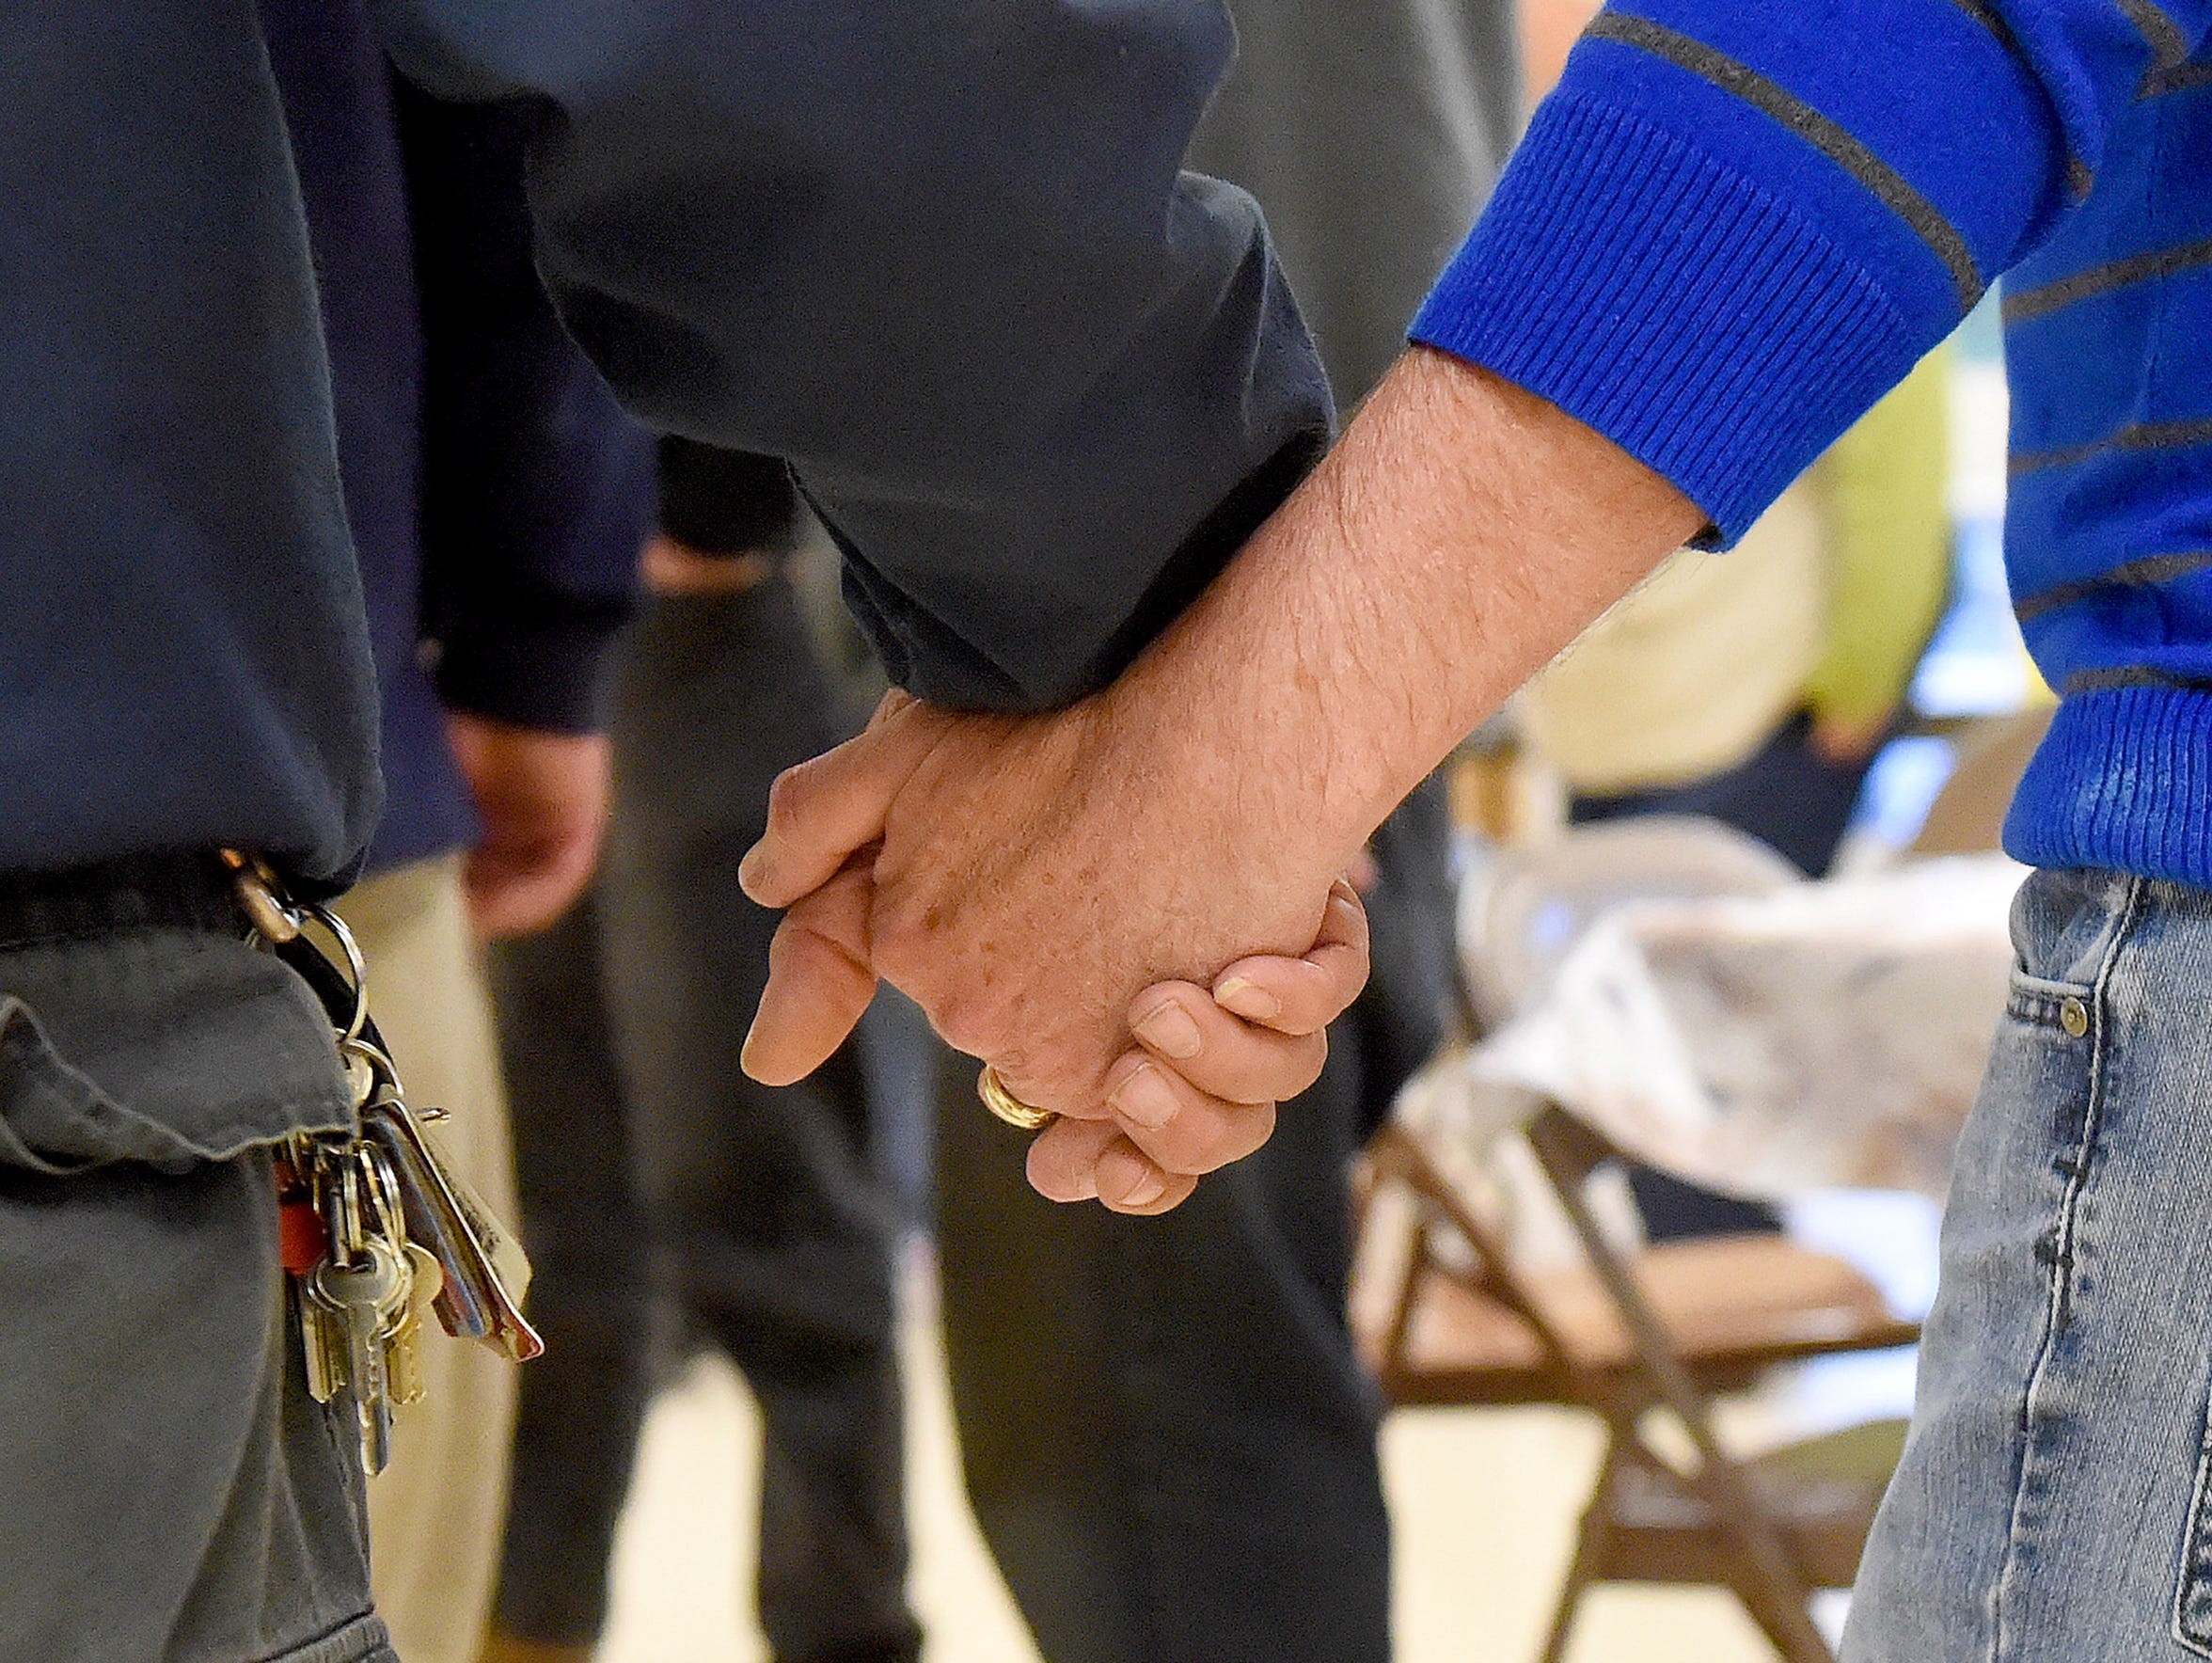 A volunteer clasps hands with a homeless person as